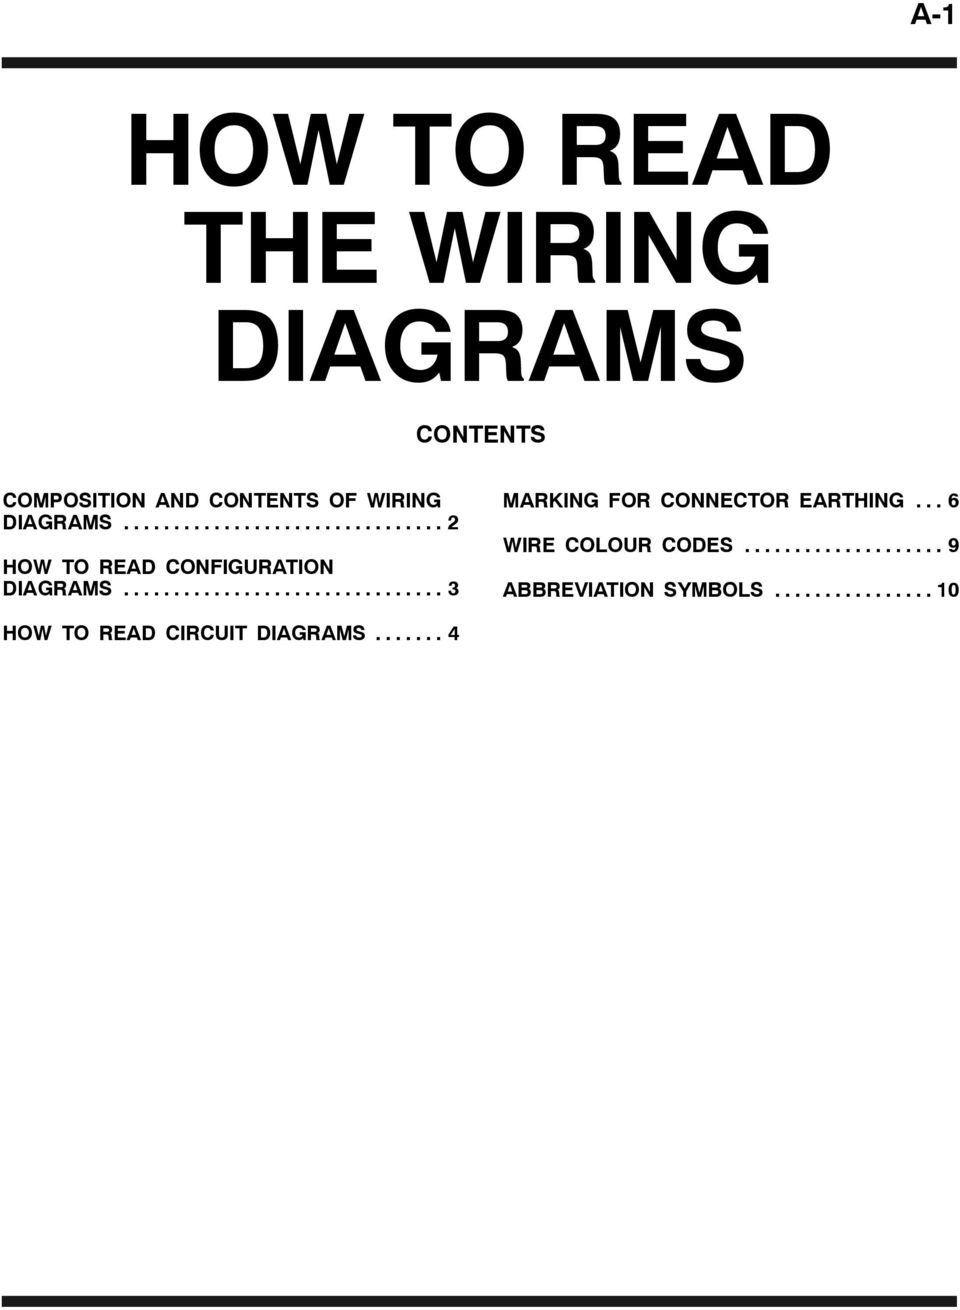 How To Read Wiring Diagrams : How to read the wiring diagrams pdf